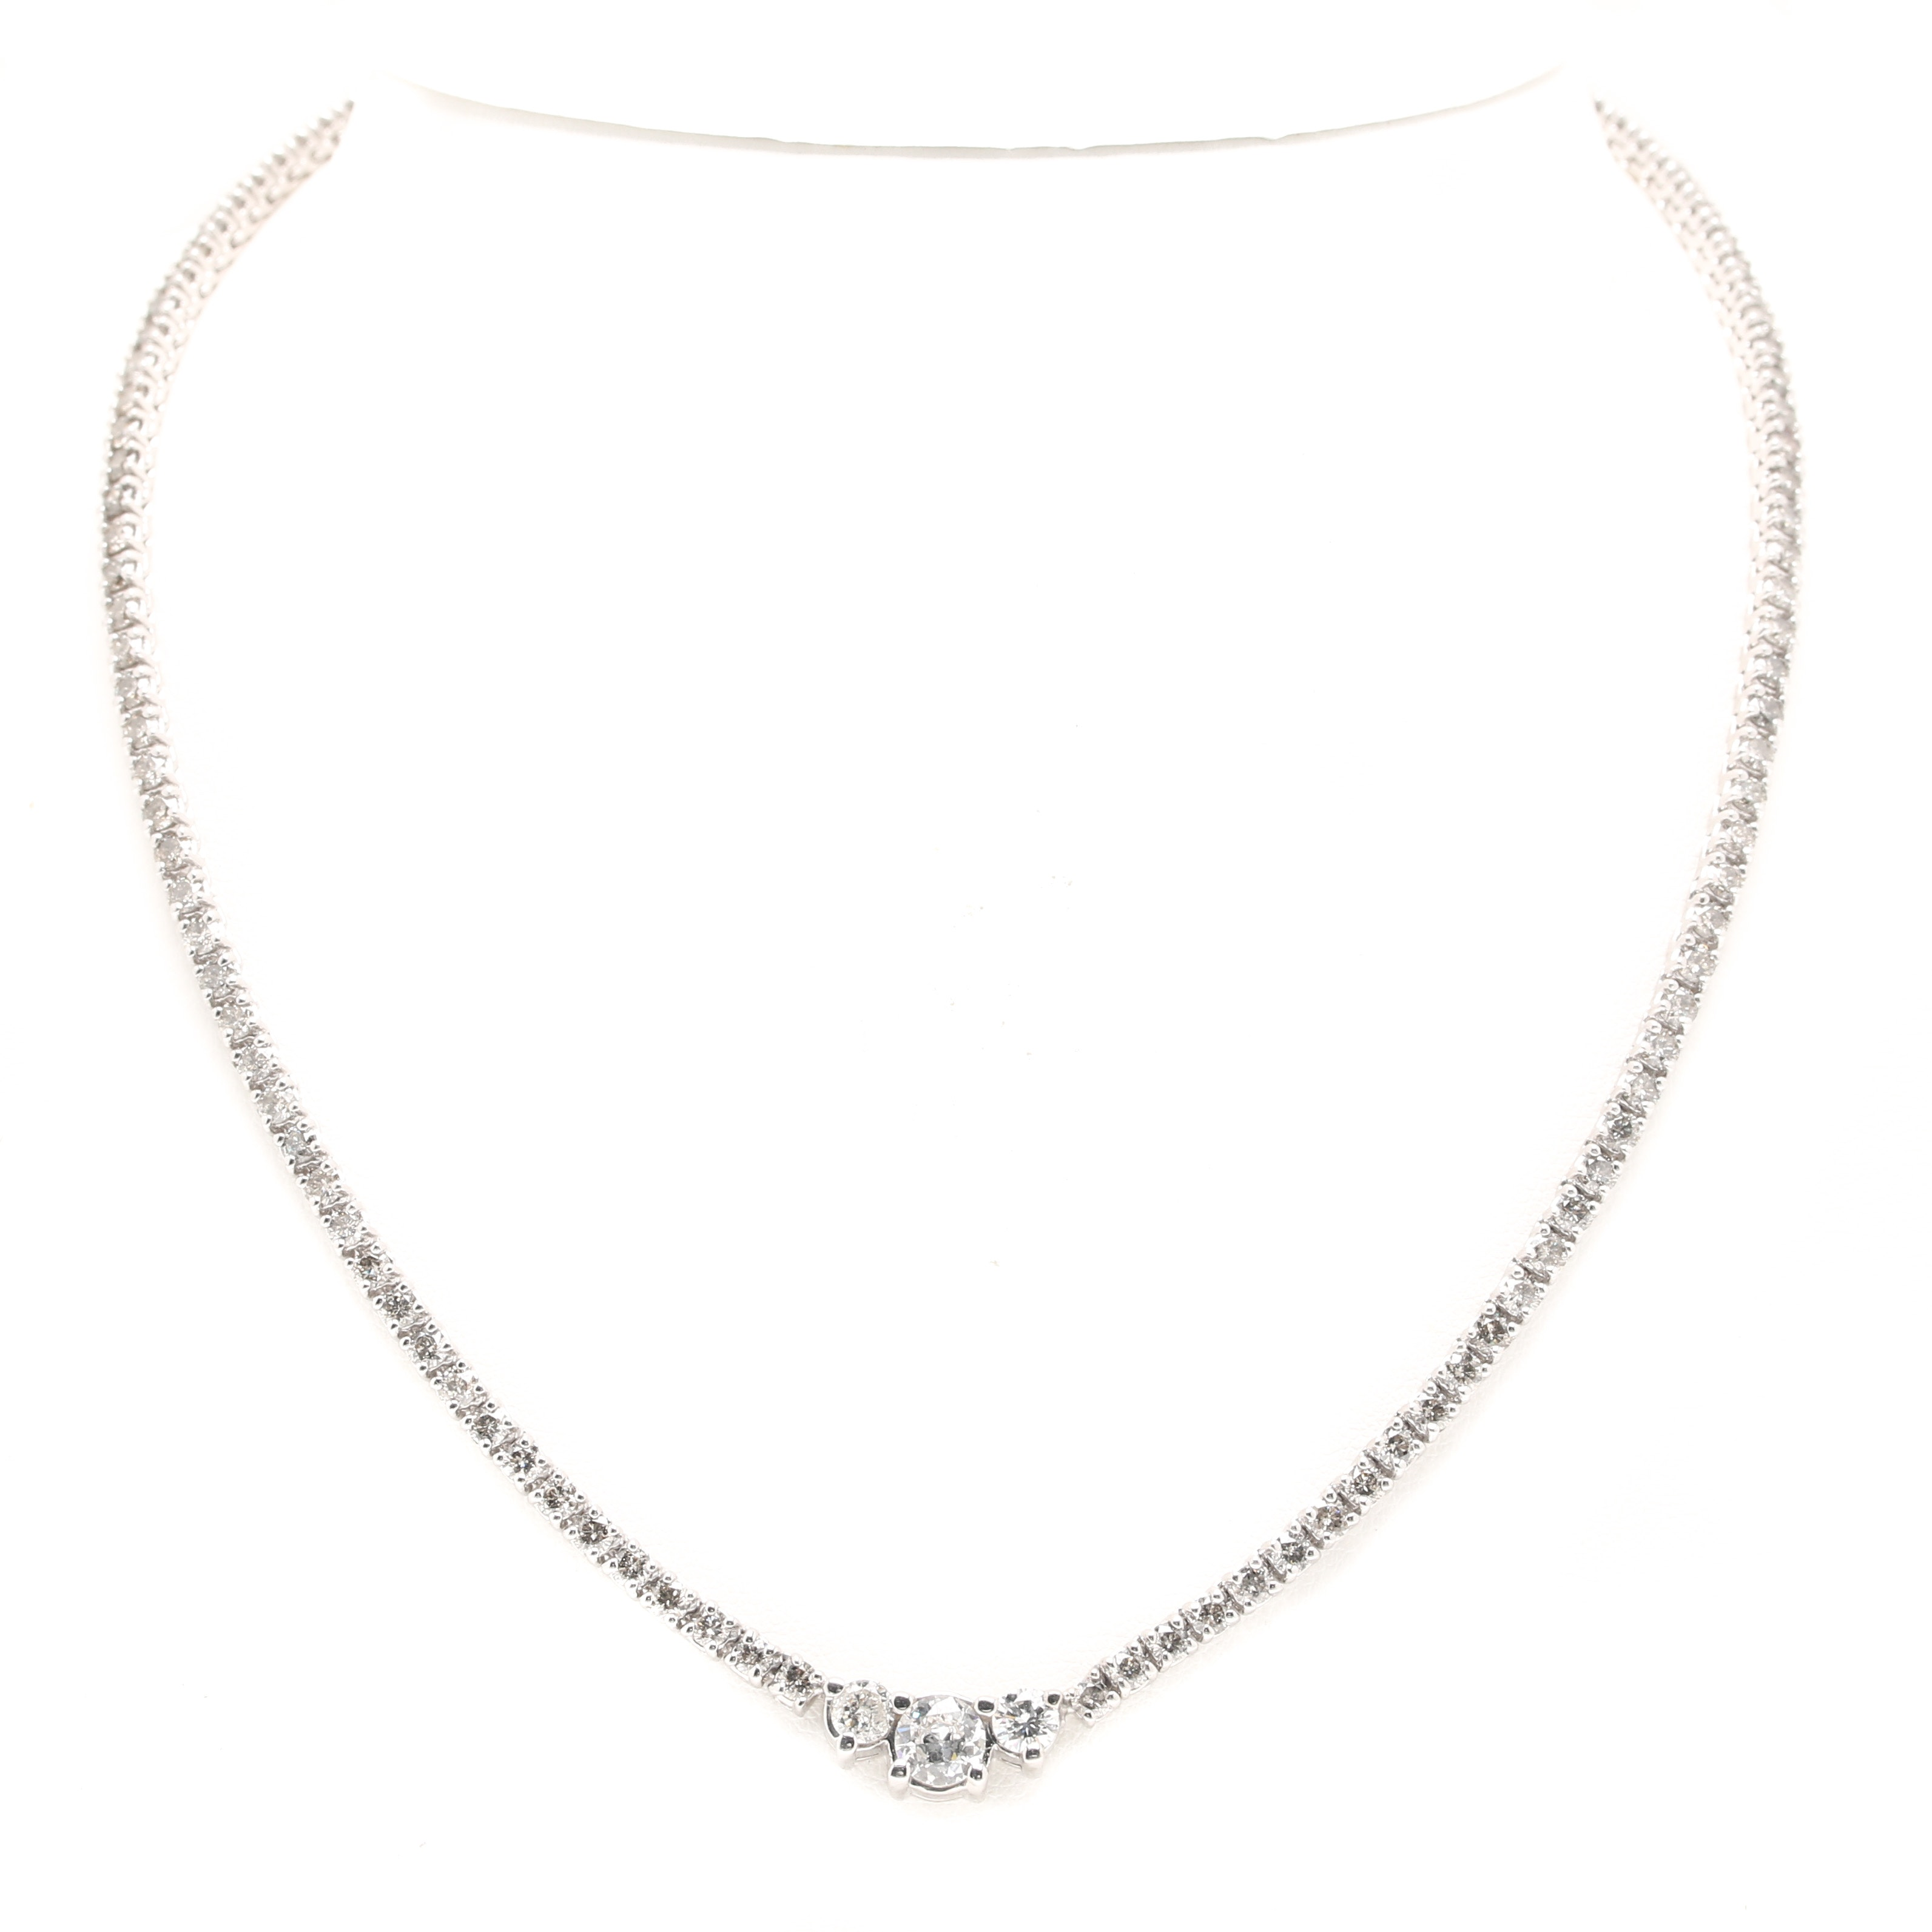 14K White Gold 8.47 CTW Diamond Necklace